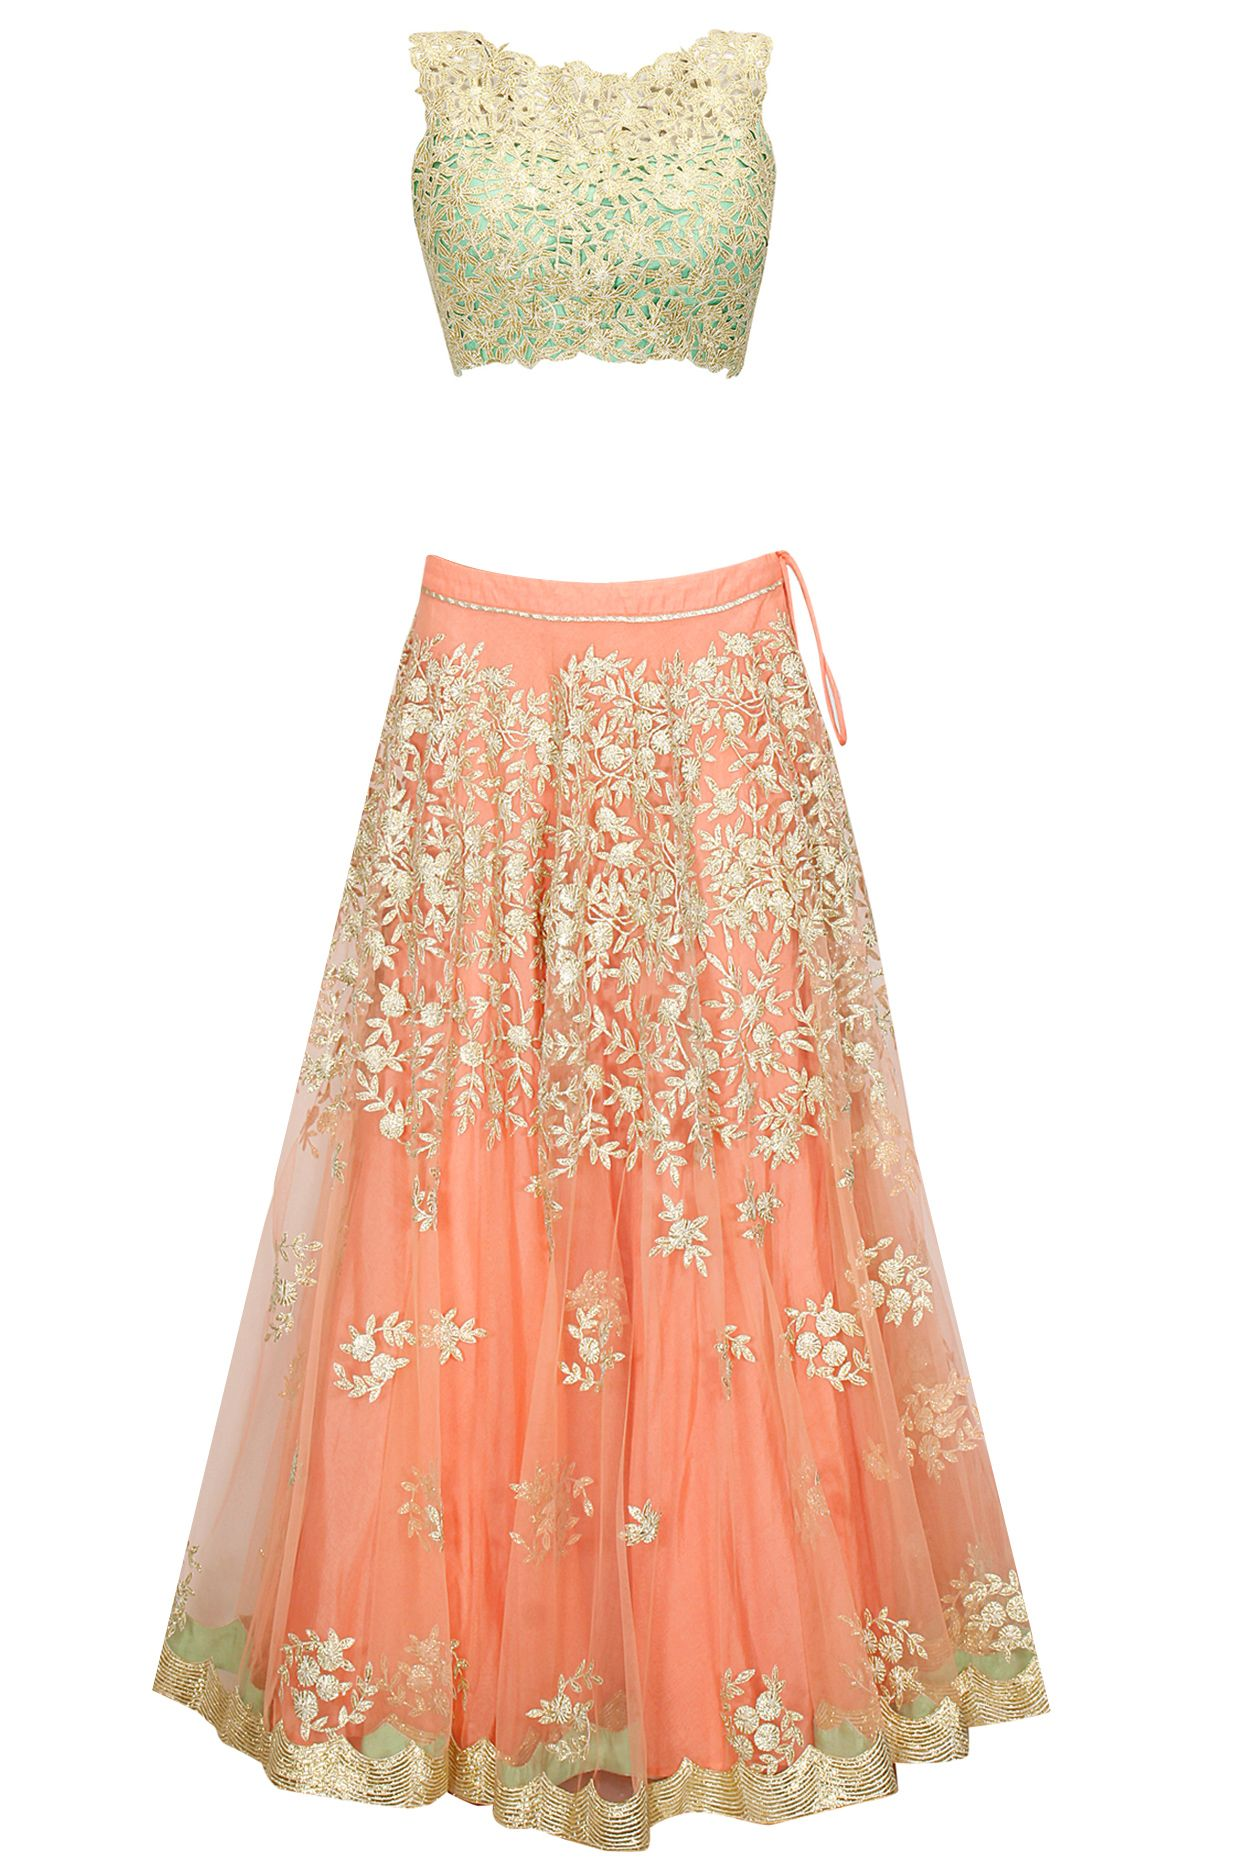 Peach embroidered lehenga with mint green cutwork blouse and yellow